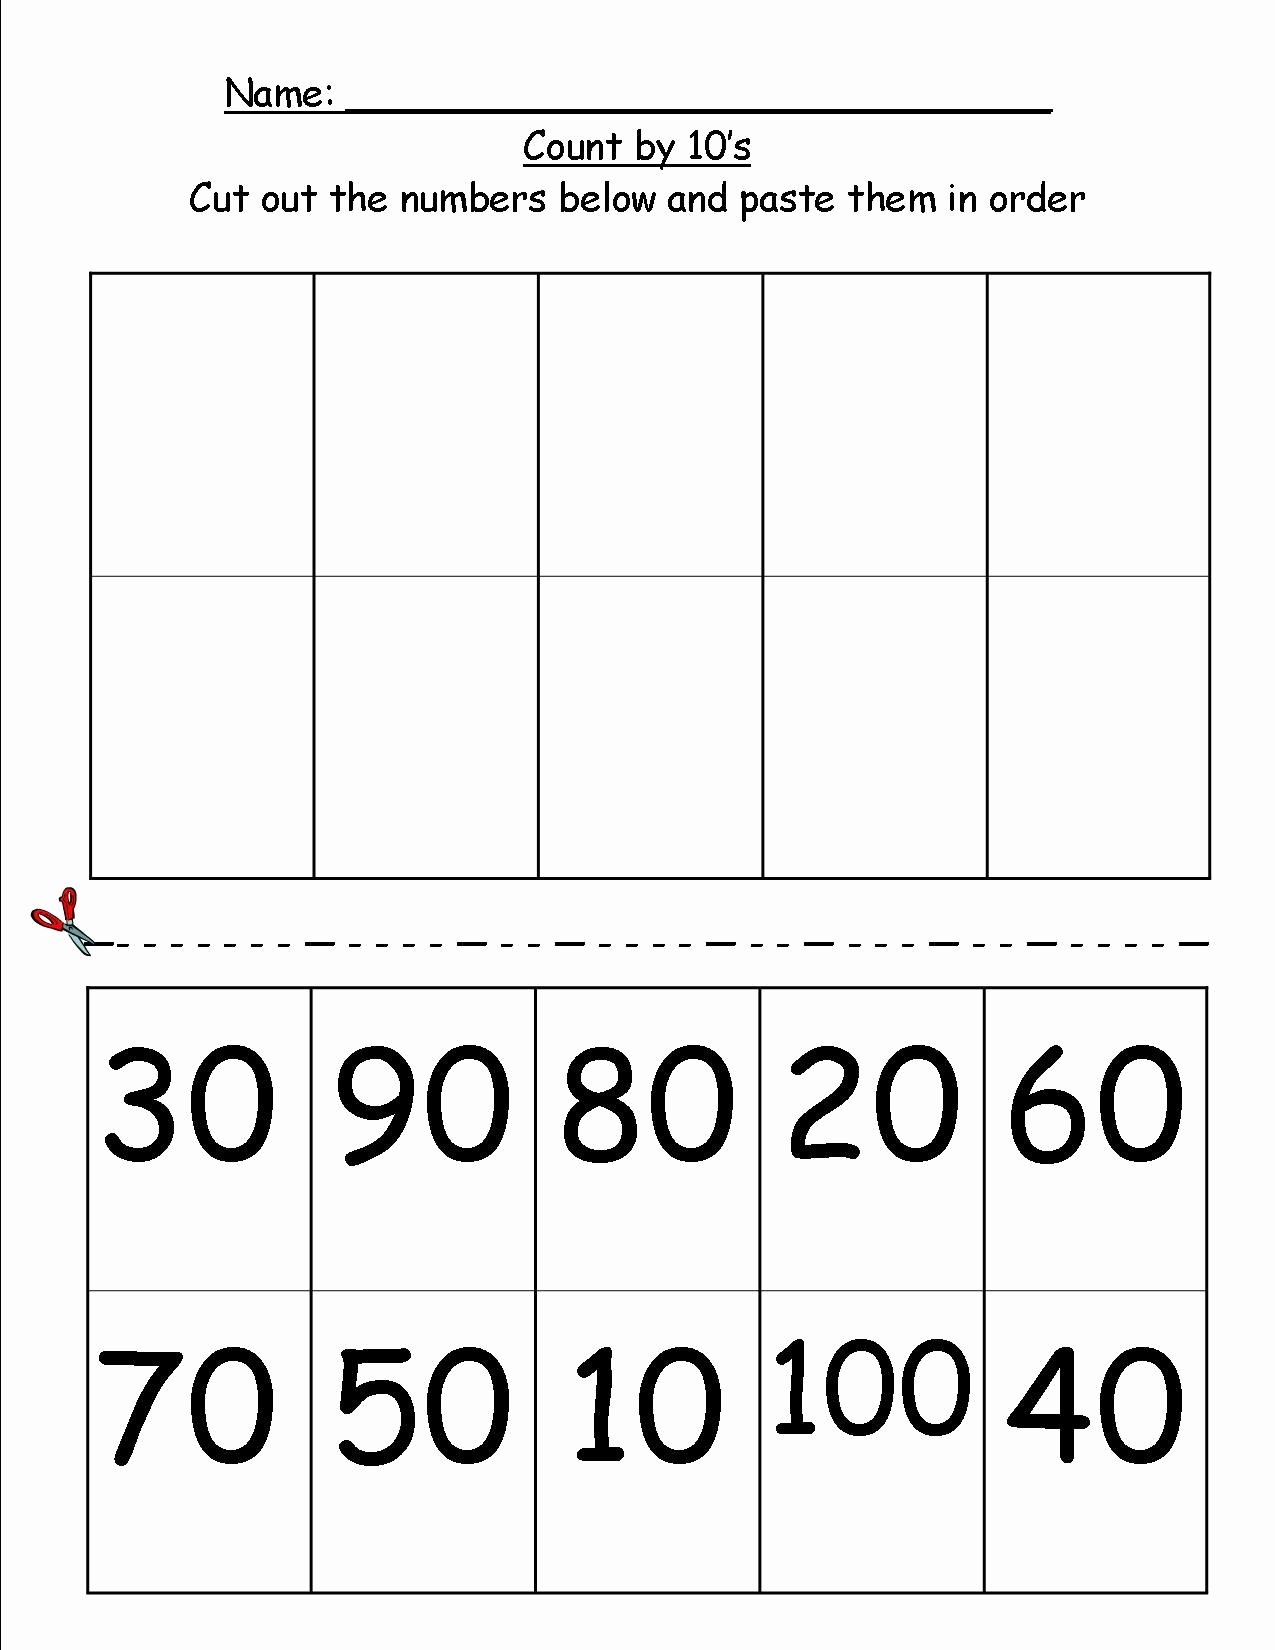 Counting In 10s Worksheet Lovely Counting by 10 S Cut N Paste 1st Grade Find More Fun